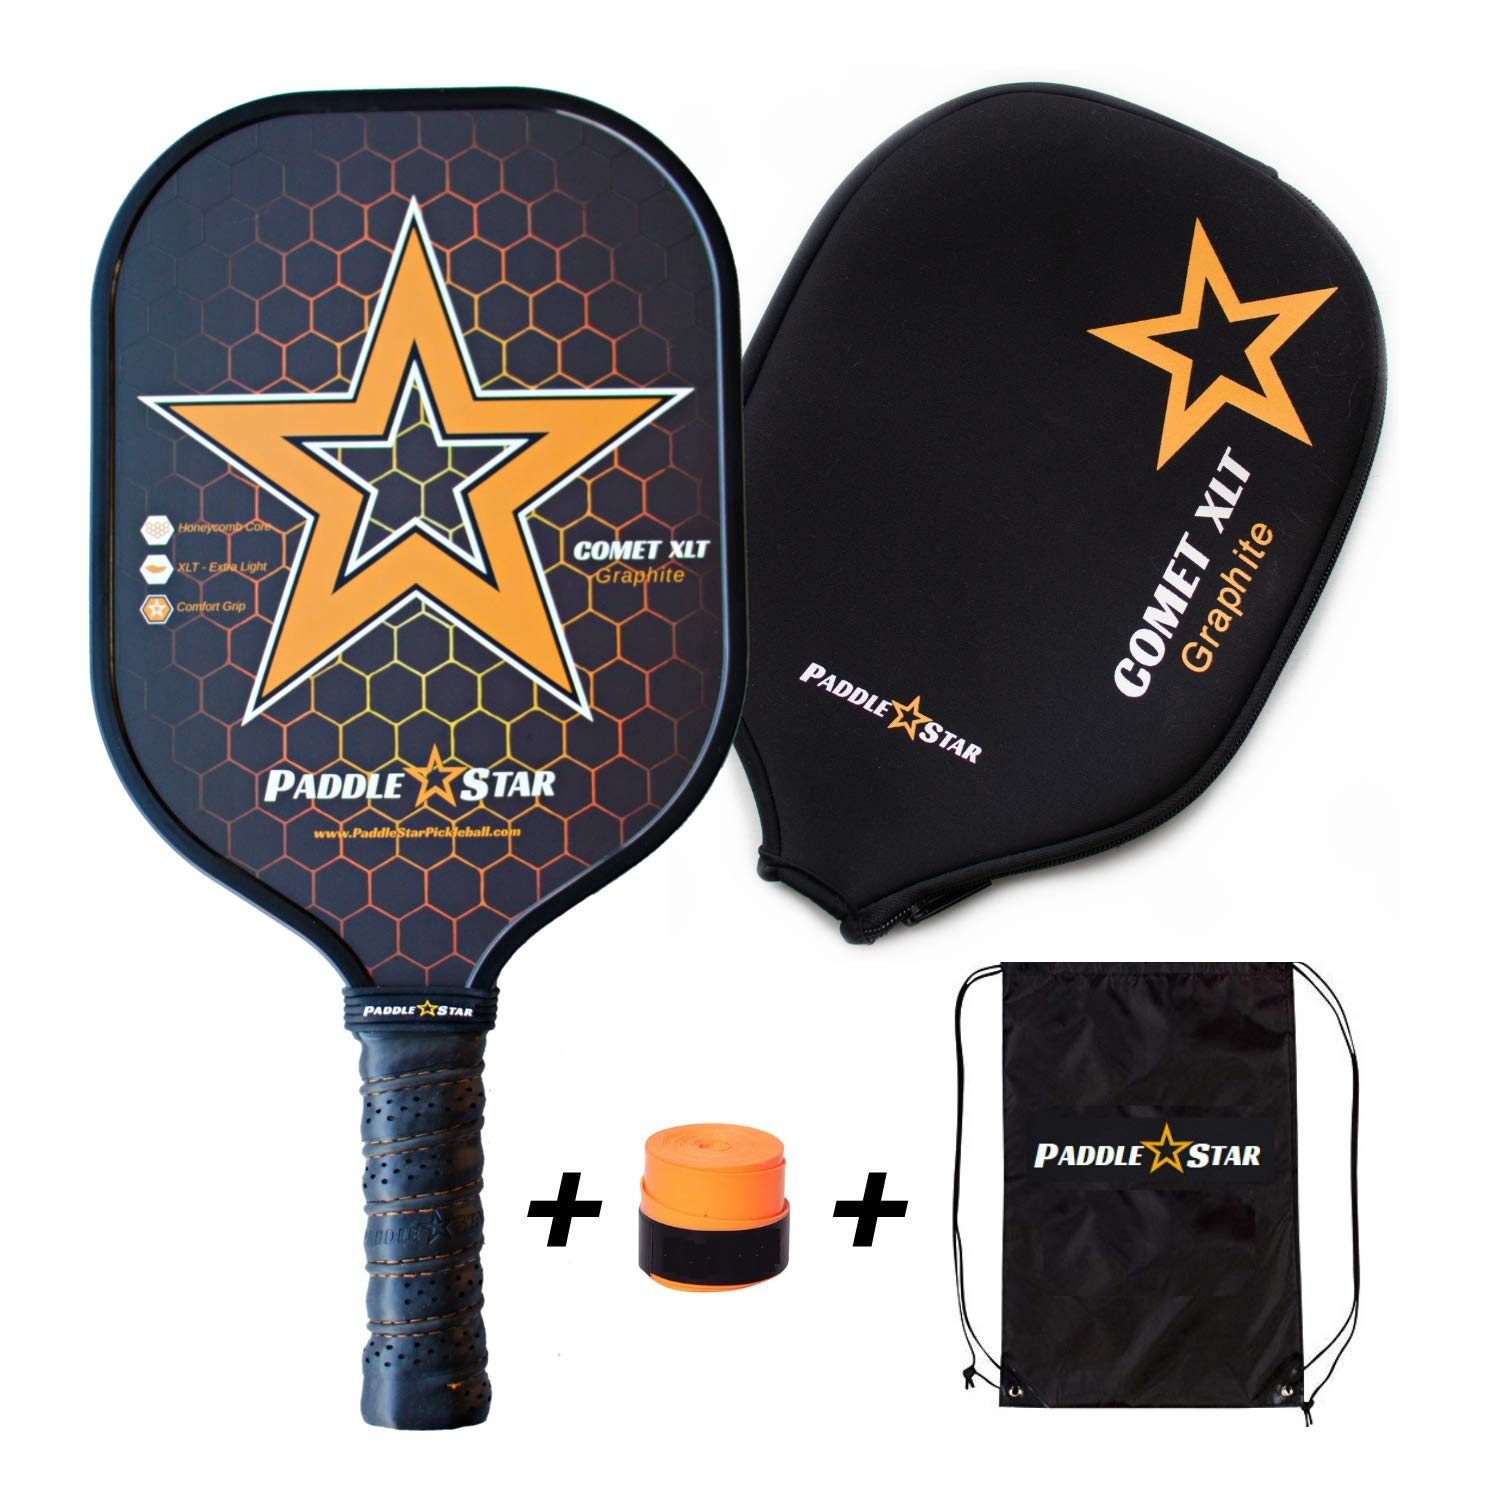 Paddle Star Comet XLT Graphite Pickleball Paddles - Polymer Honeycomb Core w/Comfort Grip for Elite Ball Control, Spin & Power - Premium 7.5 oz Set Includes Racket Cover, Overgrip, Bag & Gift Box by Paddle Star